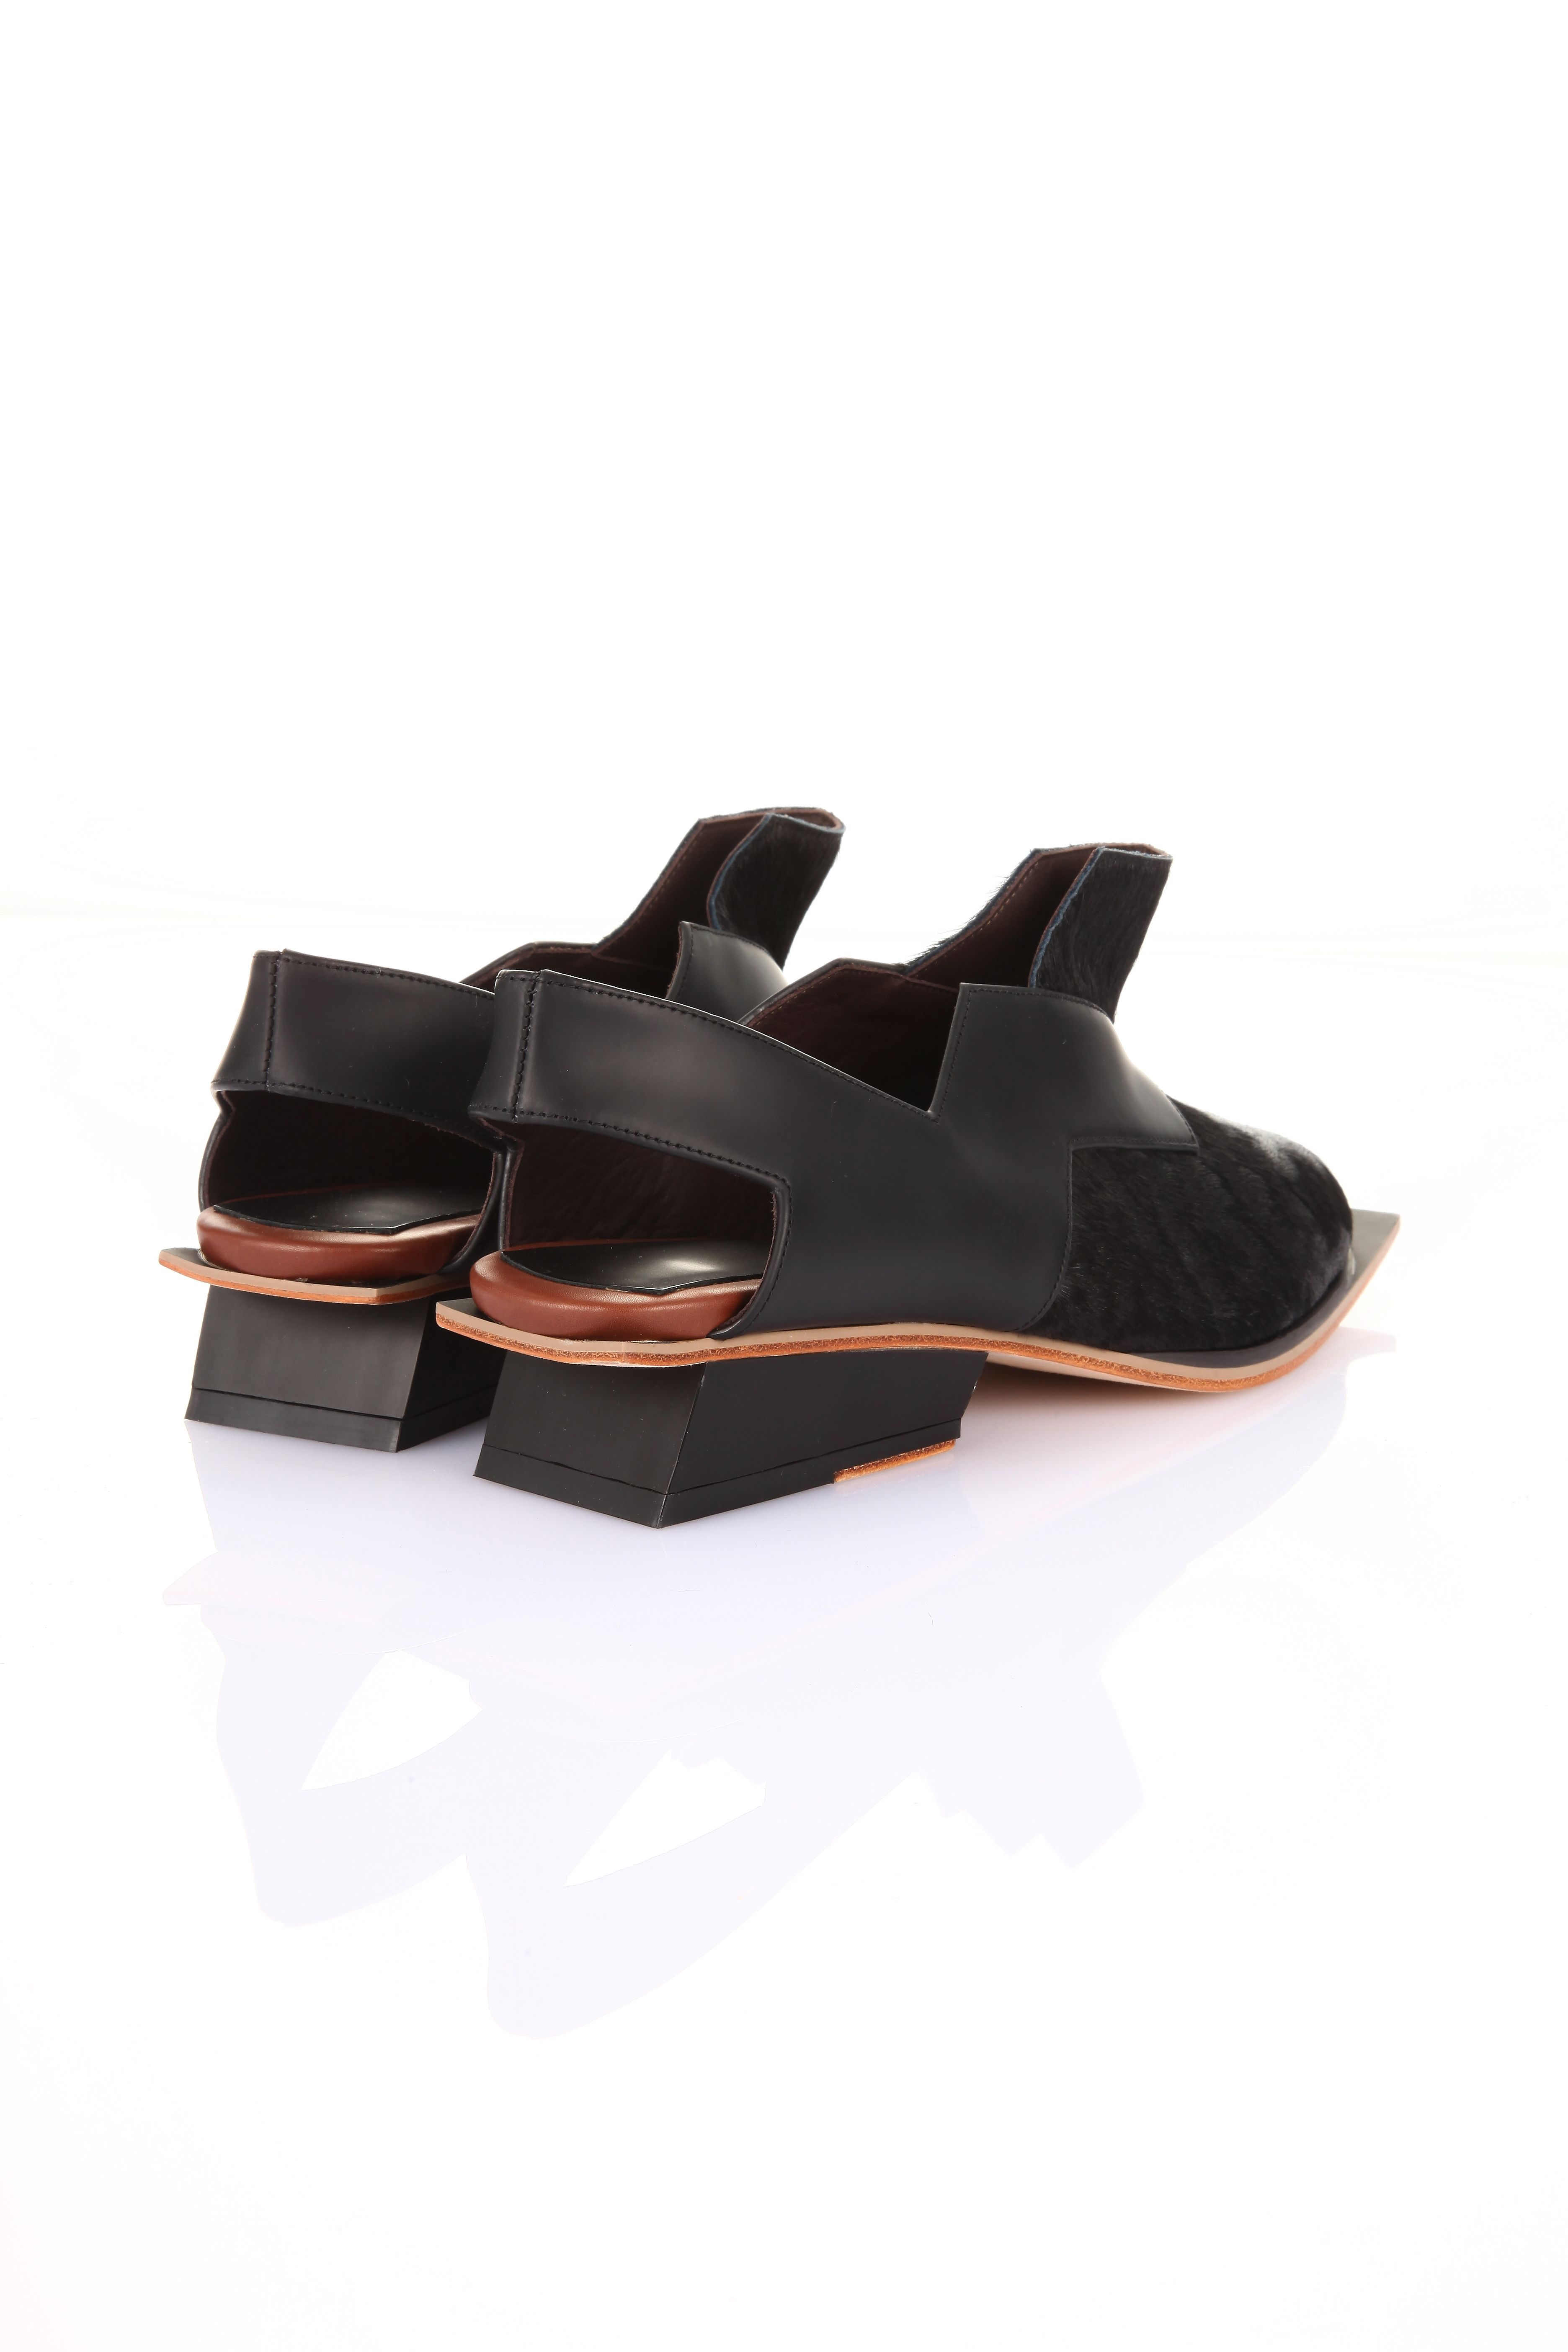 Square Root Oxford Shoe - Black | Abcense | Shop | NOT JUST A LABEL